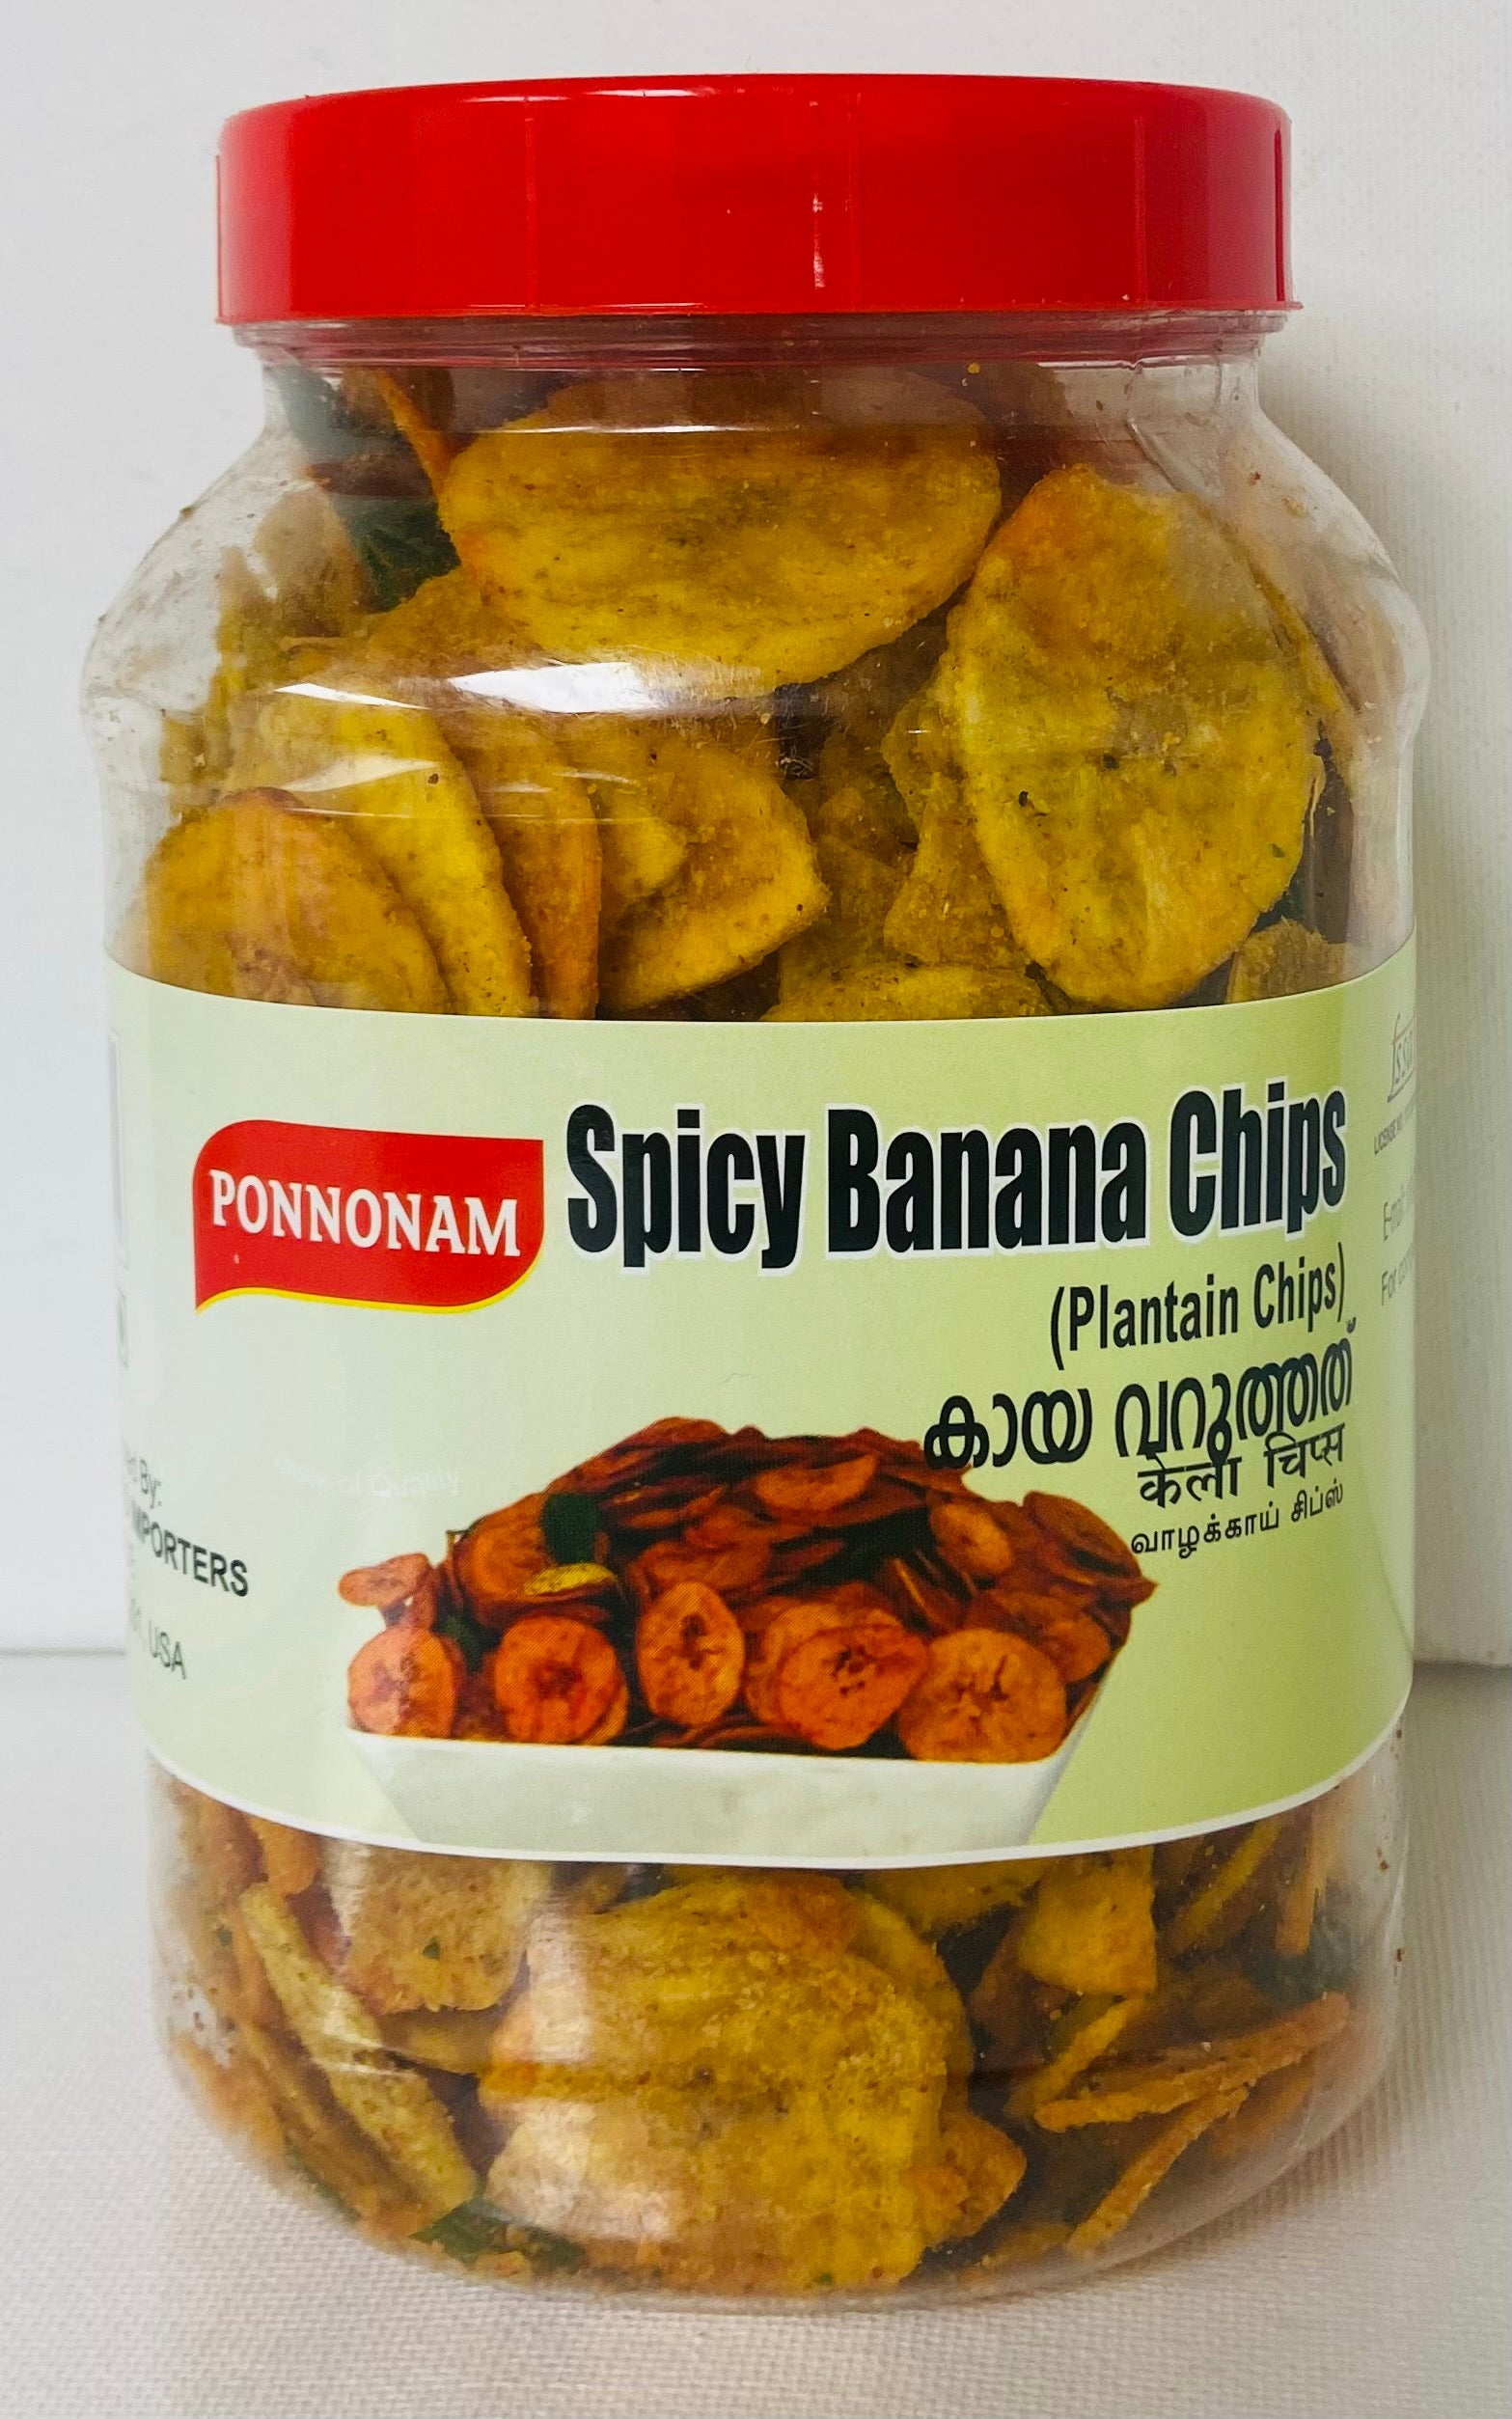 Ponnonam Spicy Banana Chips (300 g)